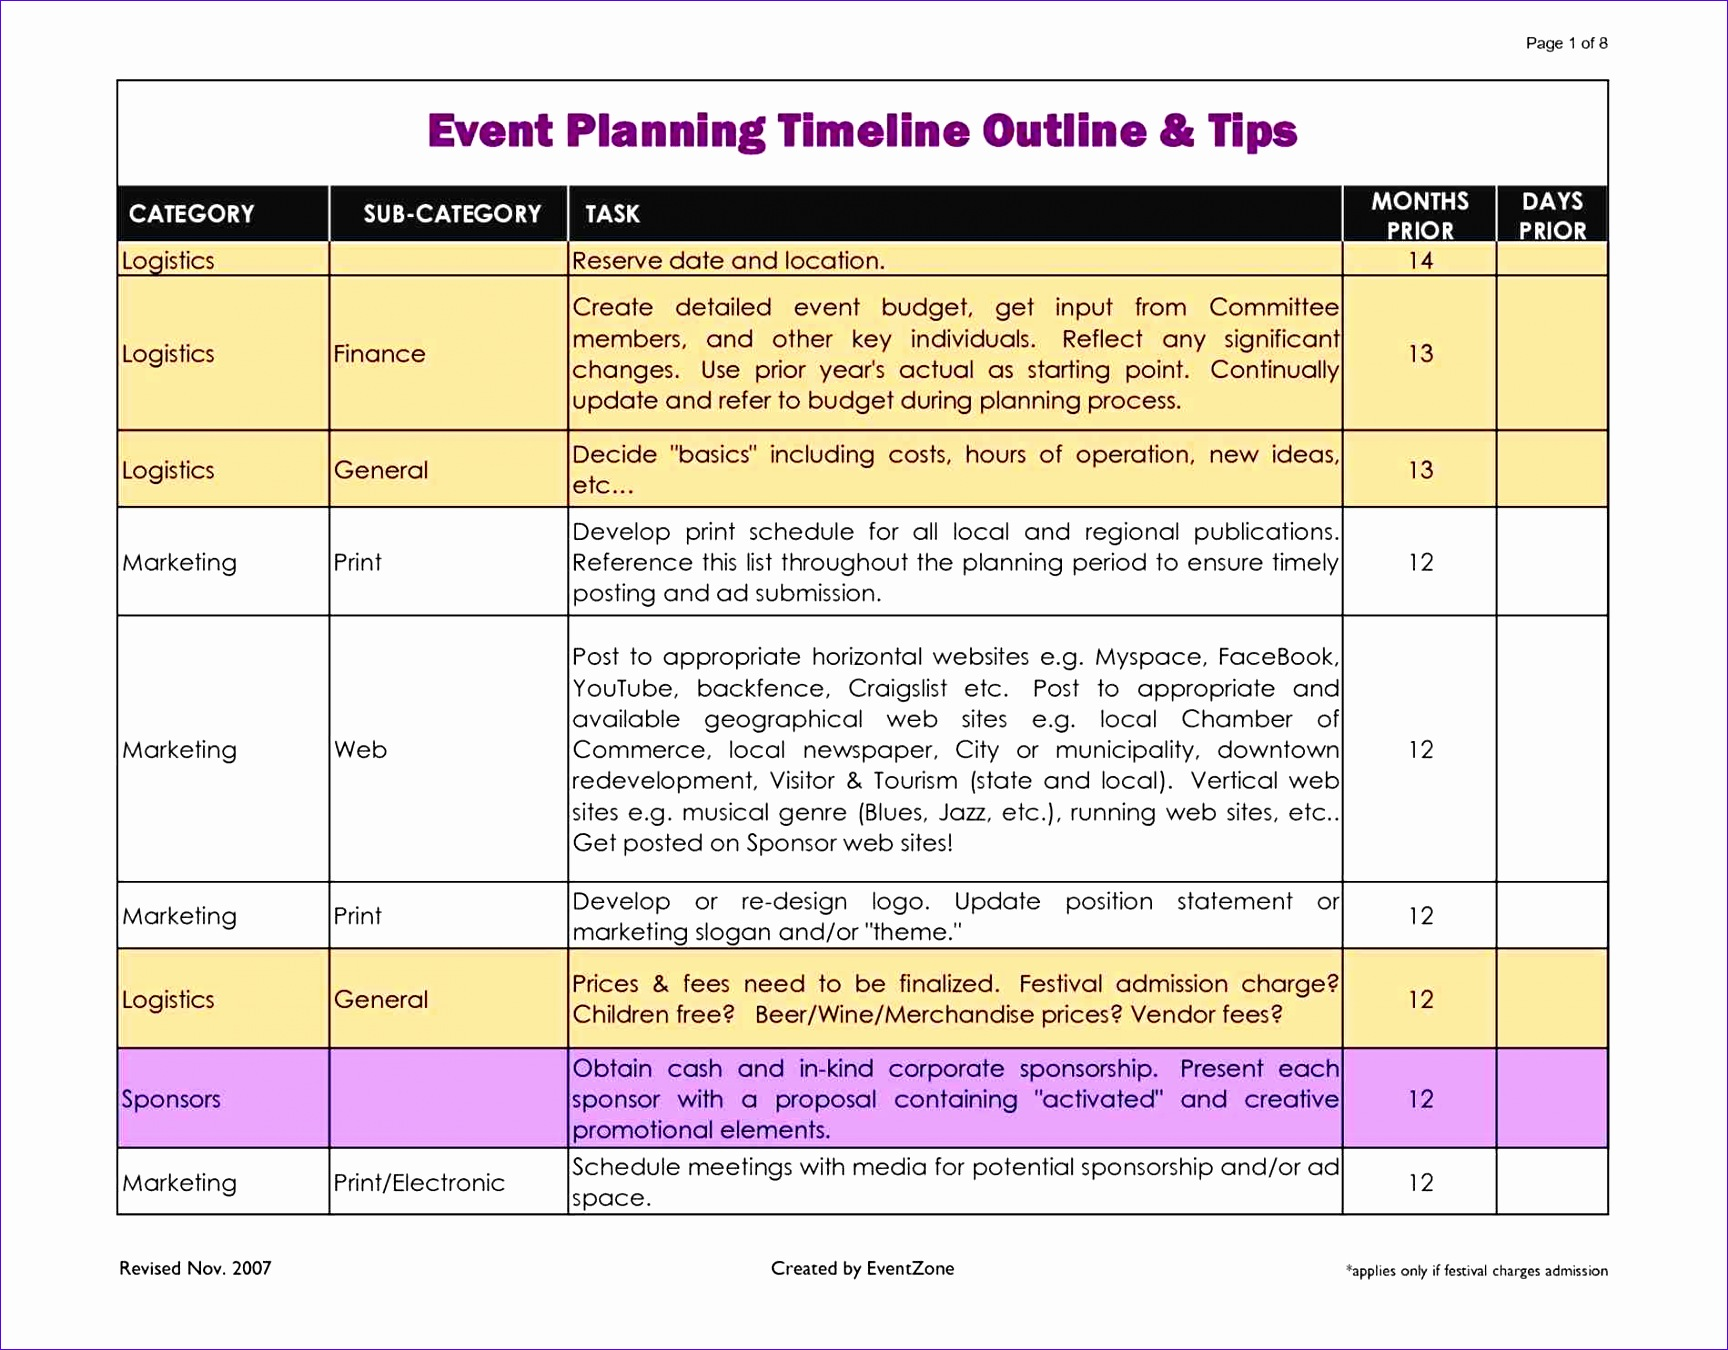 capacity planning template excel restaurant reservations suop youtube suop Capacity Planning Template In Excel Spreadsheet template youtube event planning excel google search eventing